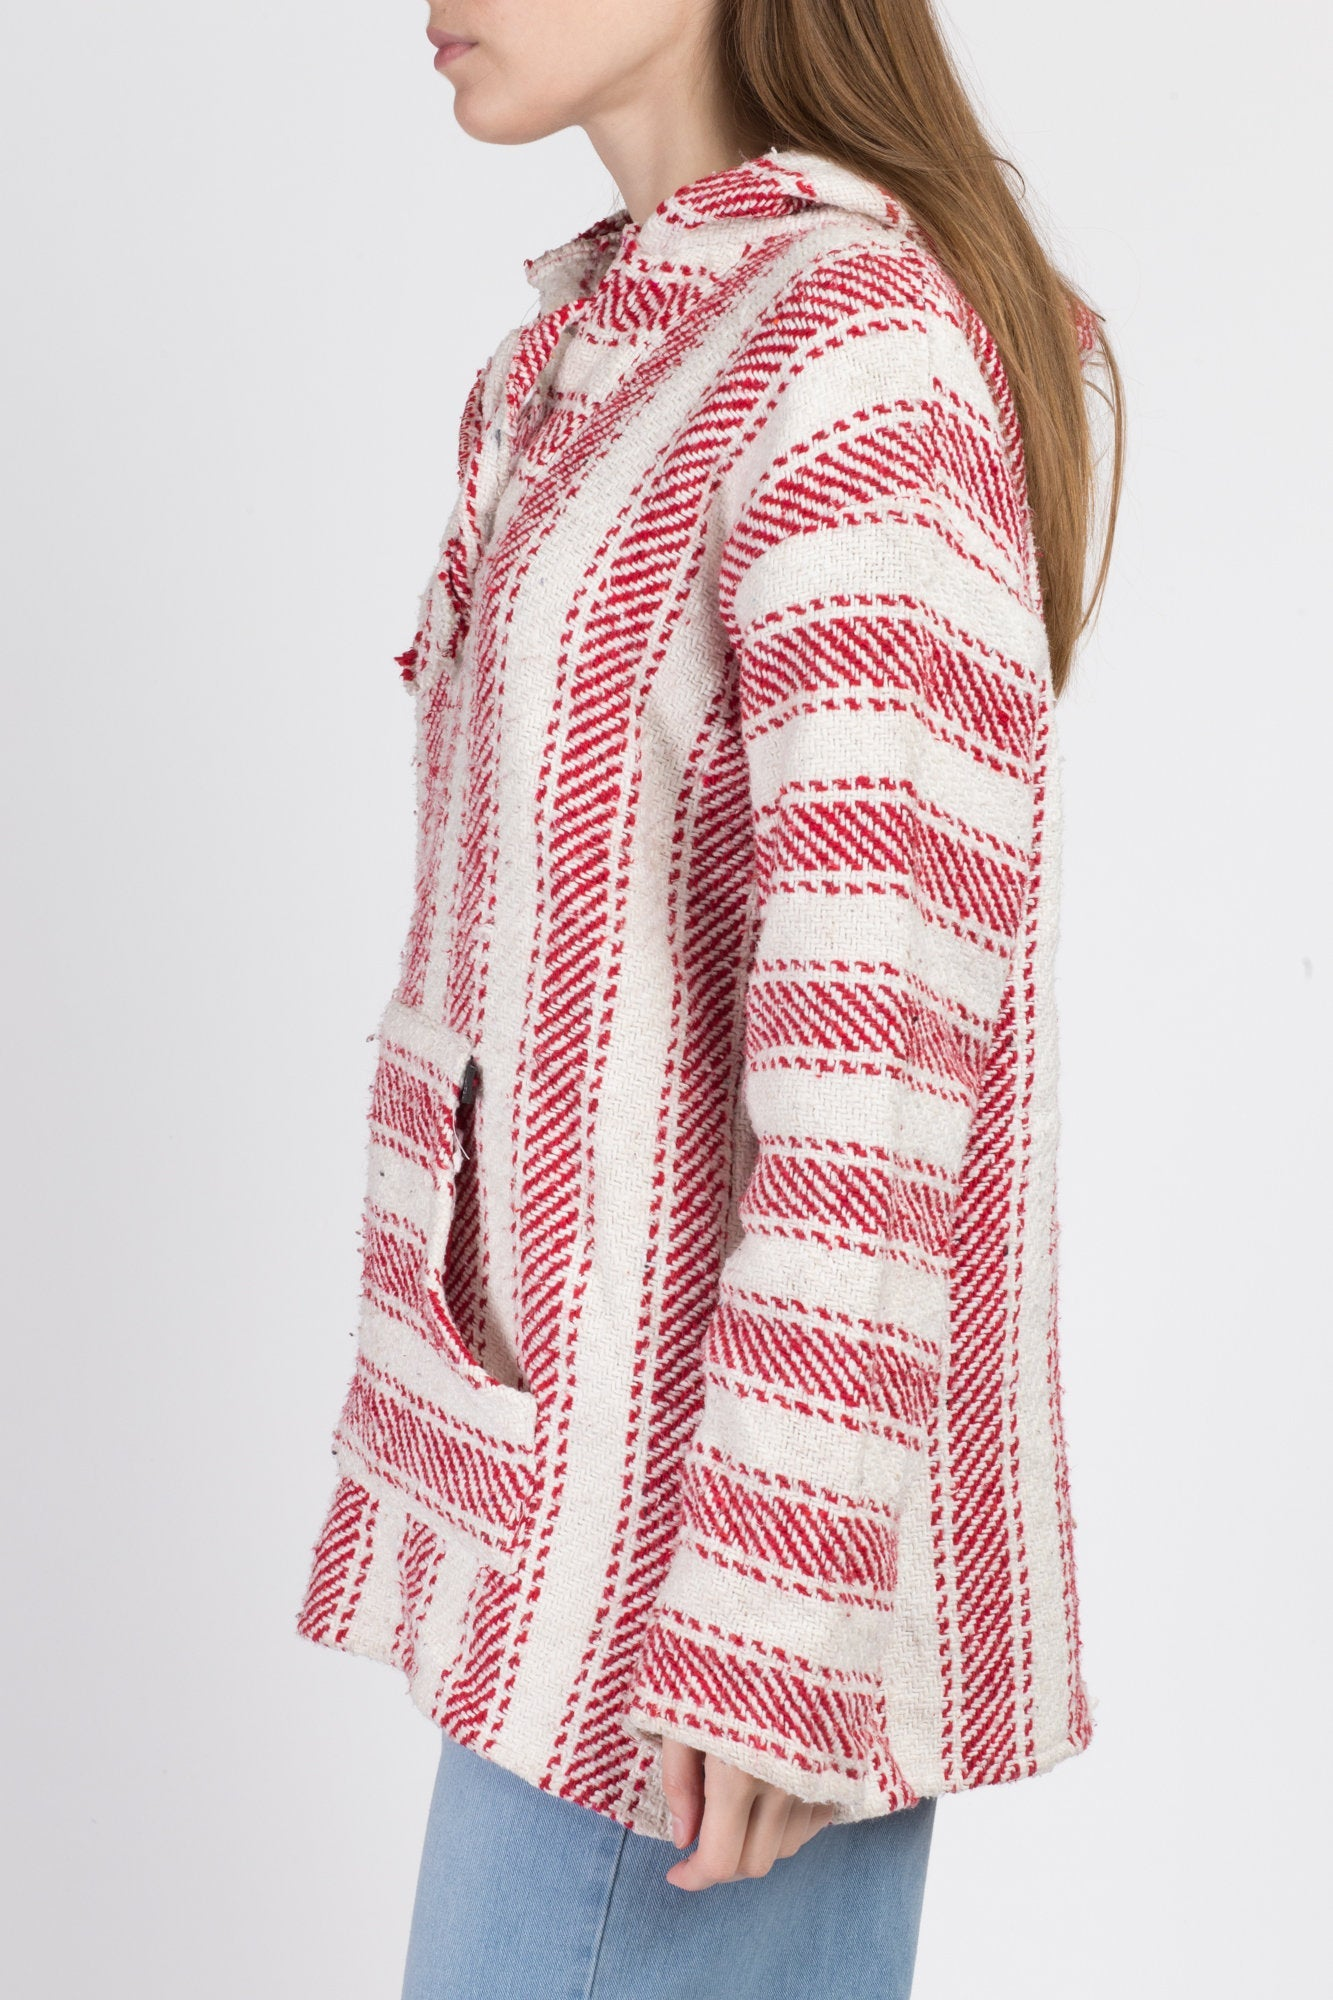 90s Red & White Striped Drug Rug Hoodie - Large